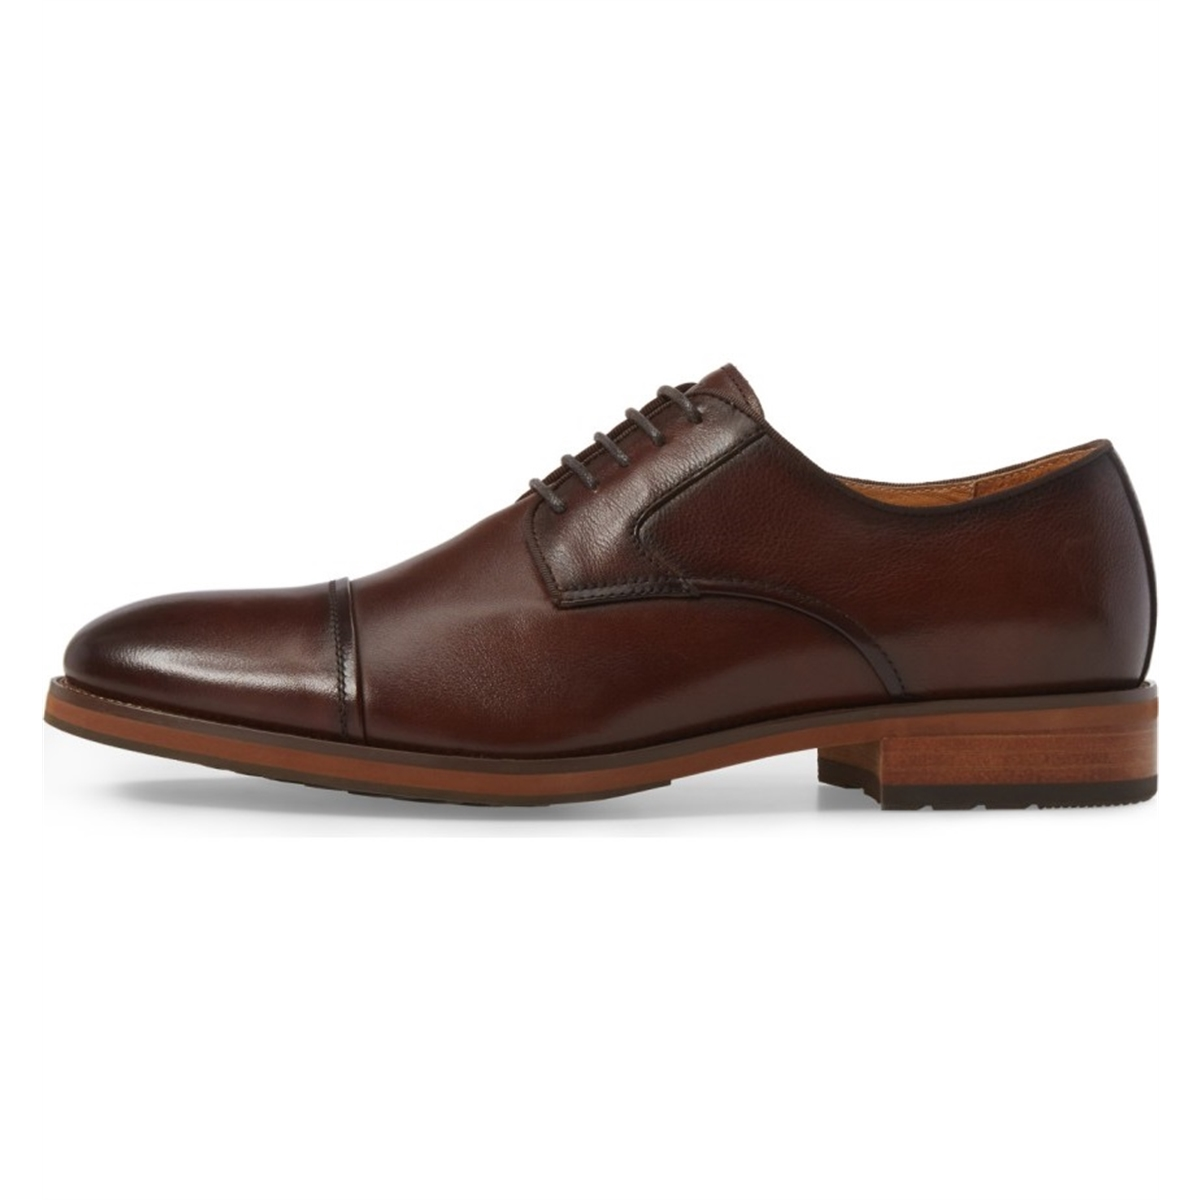 Florsheim Men Blaze Cap Toe Oxford Shoes by Florsheim